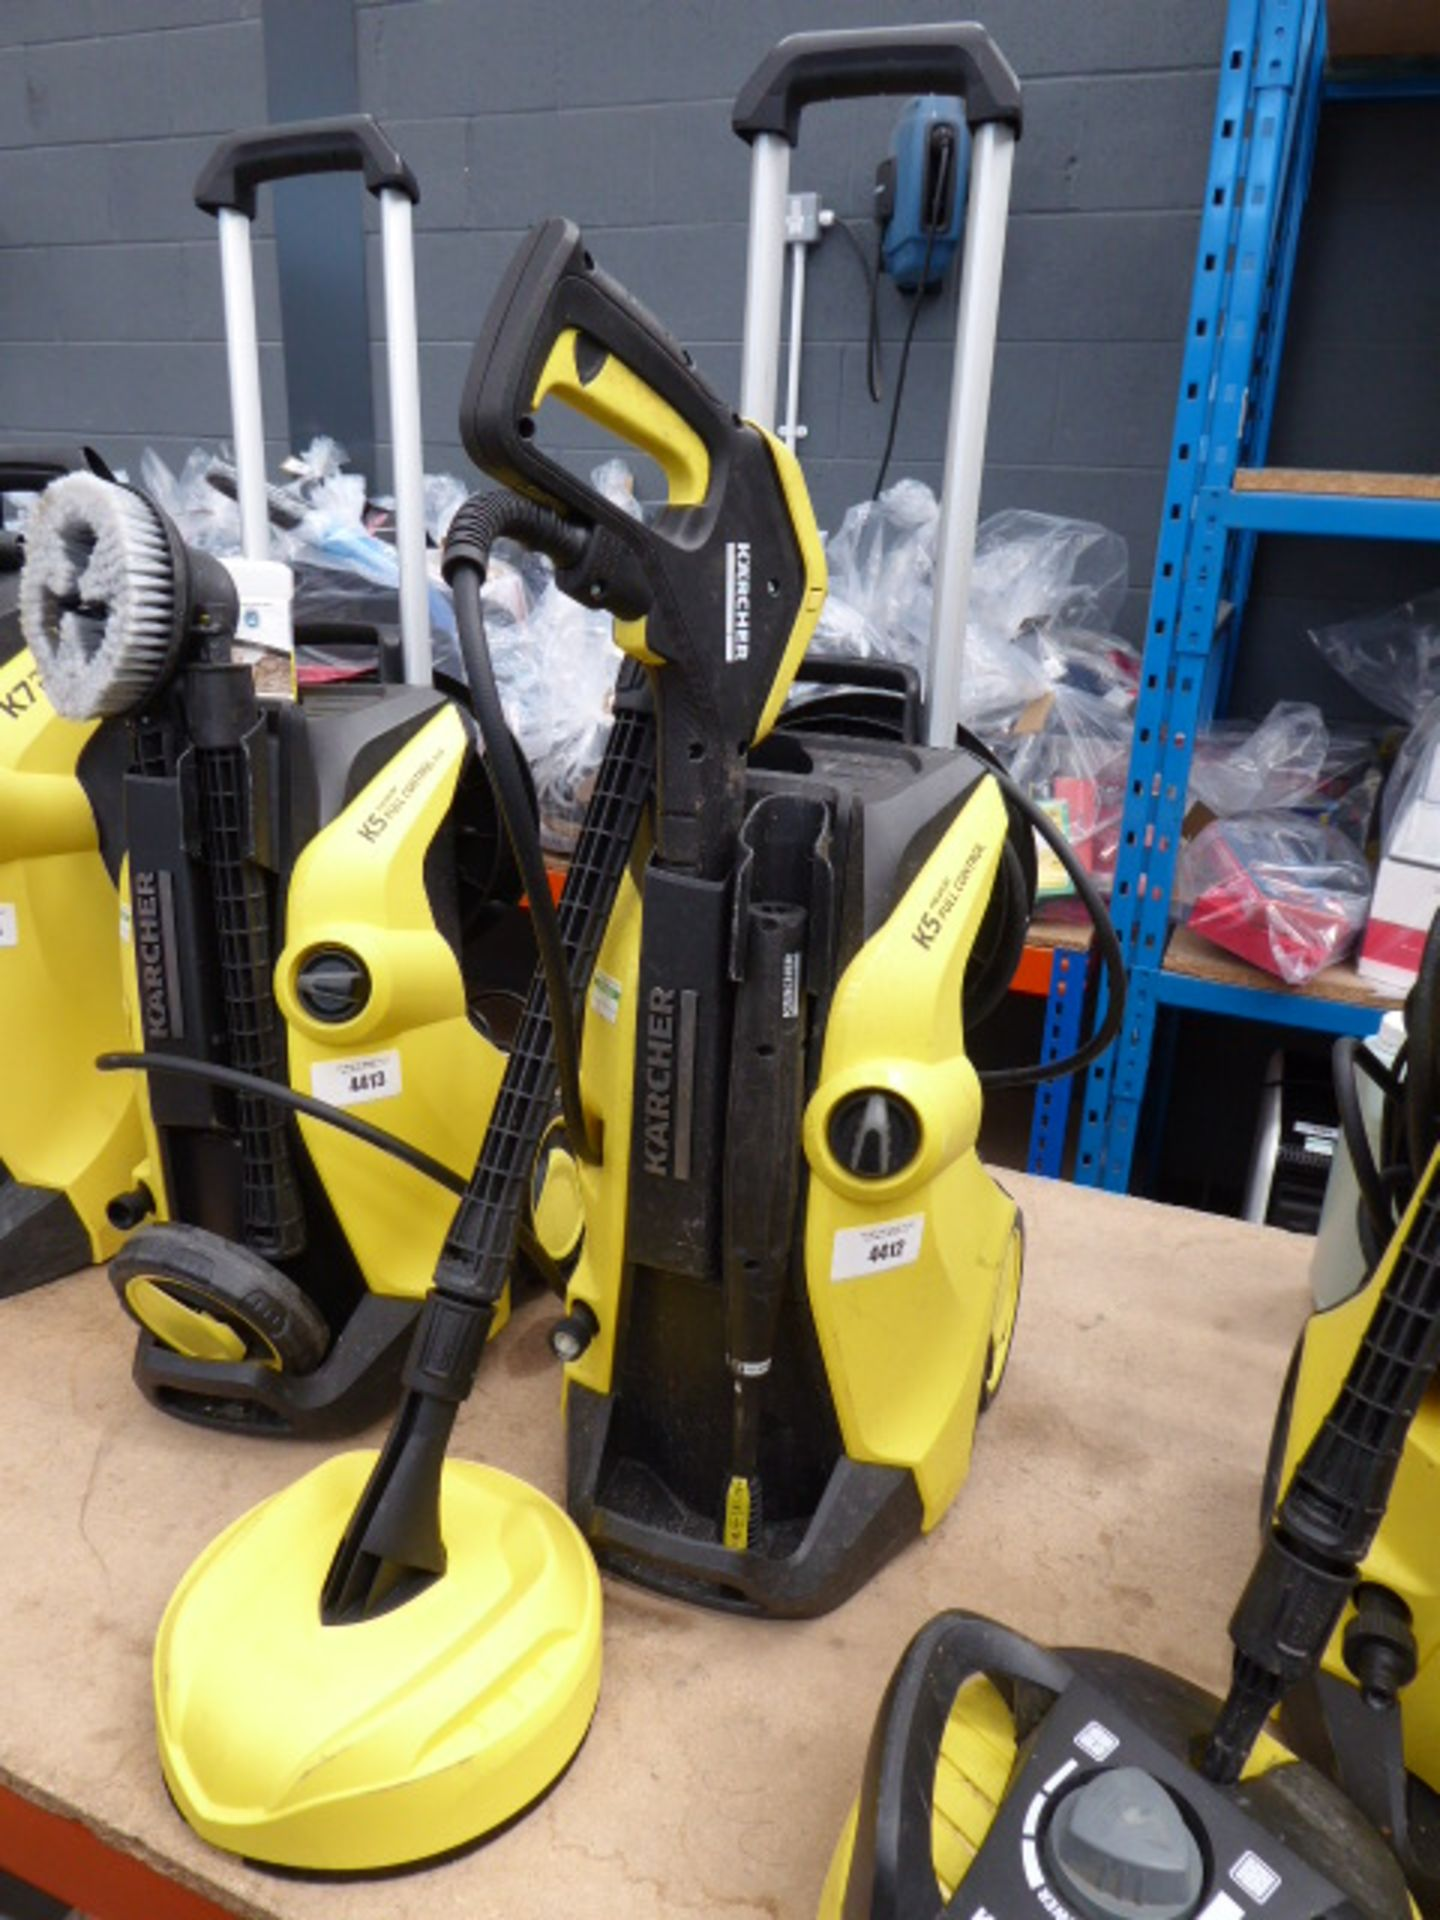 Lot 4412 - A Karcher K5 premium full control pressure washer with patio cleaning head